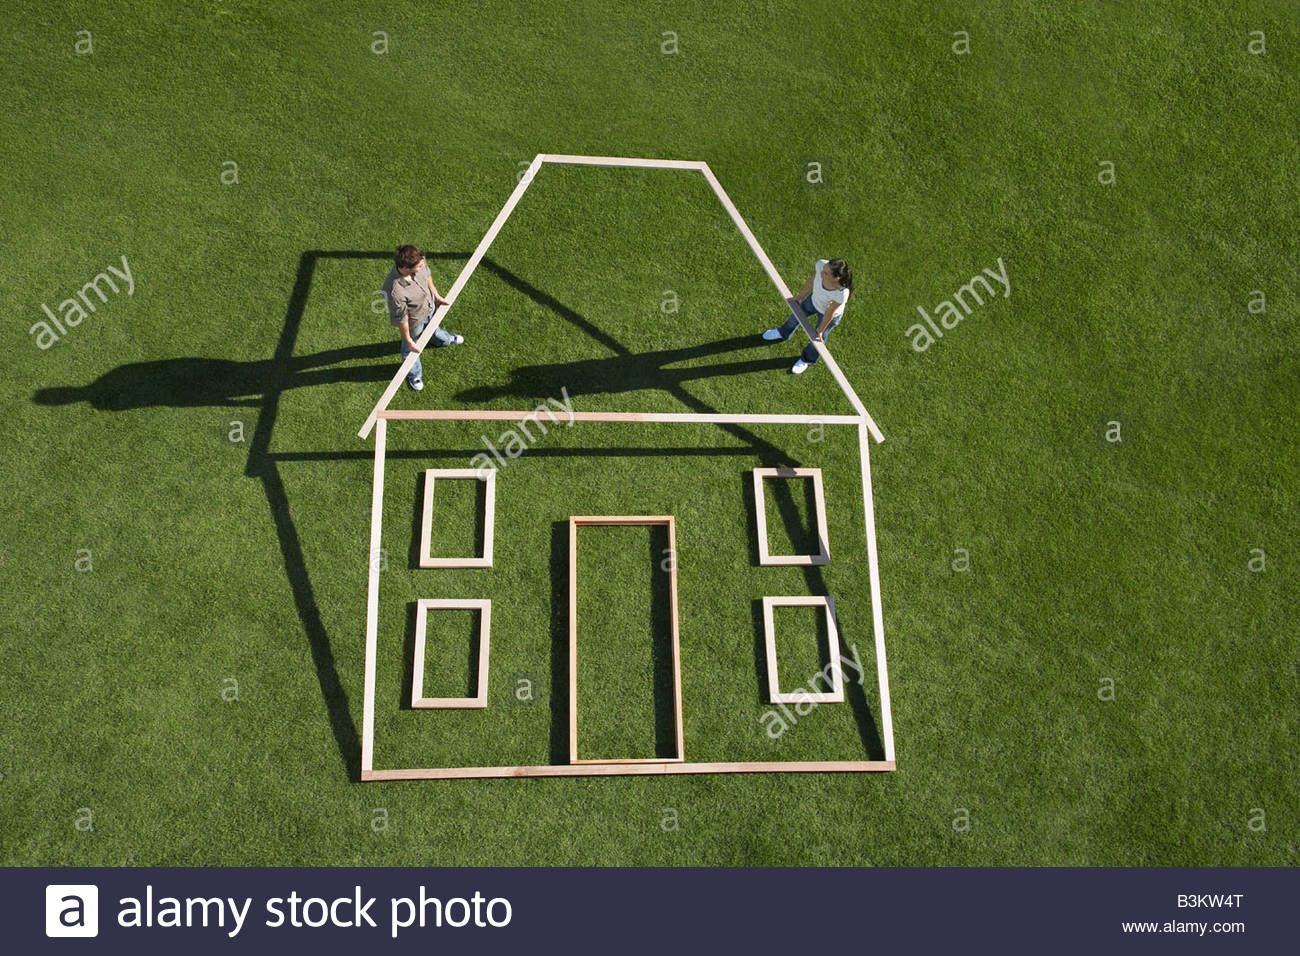 Couple building house outline - Stock Image